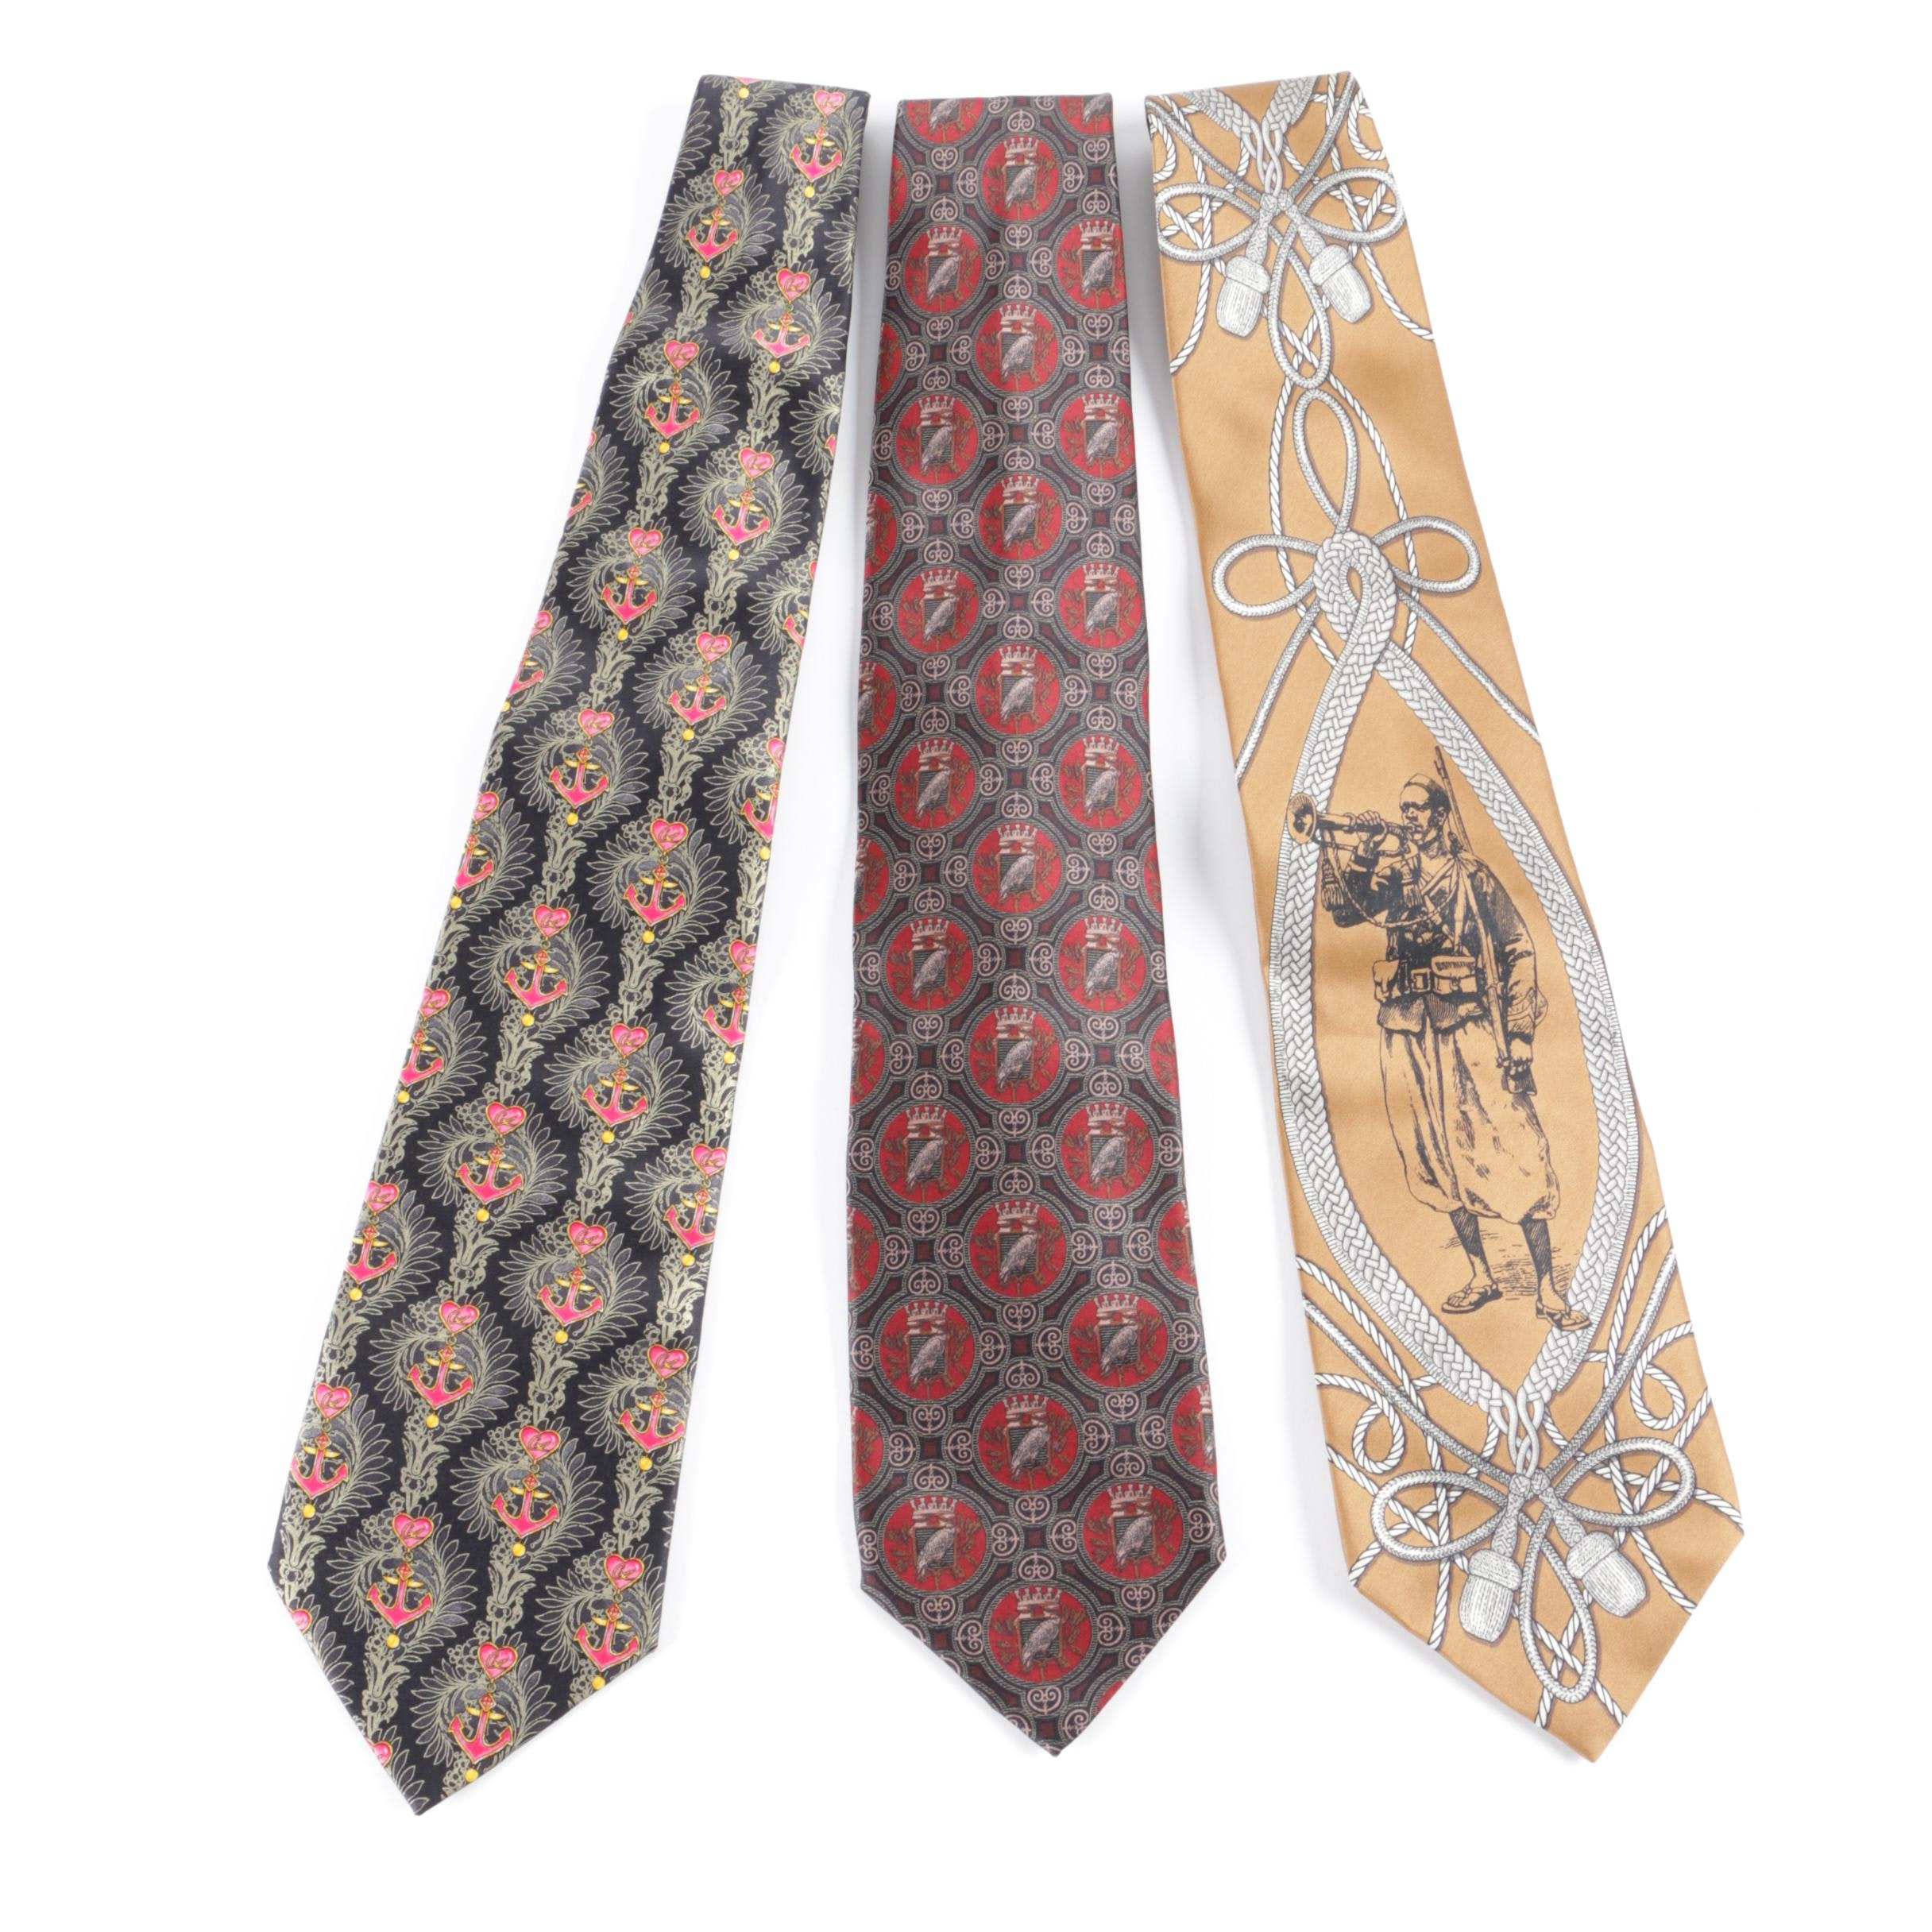 Christian Lacroix of Paris and Gianfranco Ferre Silk Neckties, Made in Italy